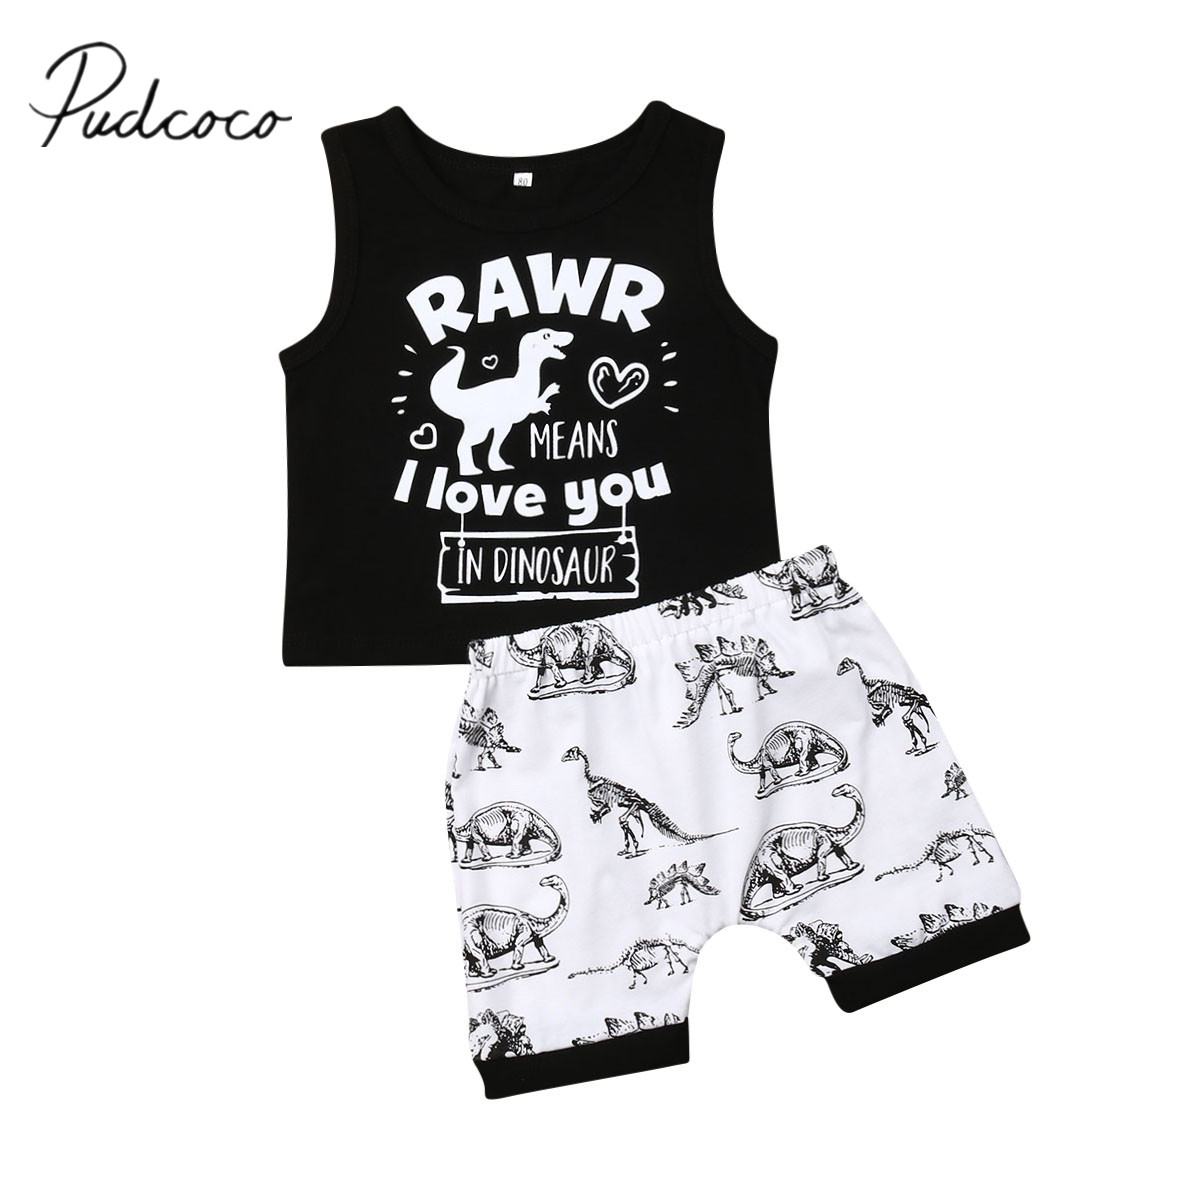 Toddler Infant Baby Boys Letter T shirt Tops Dinosaur Pants Clothes Outfits Set